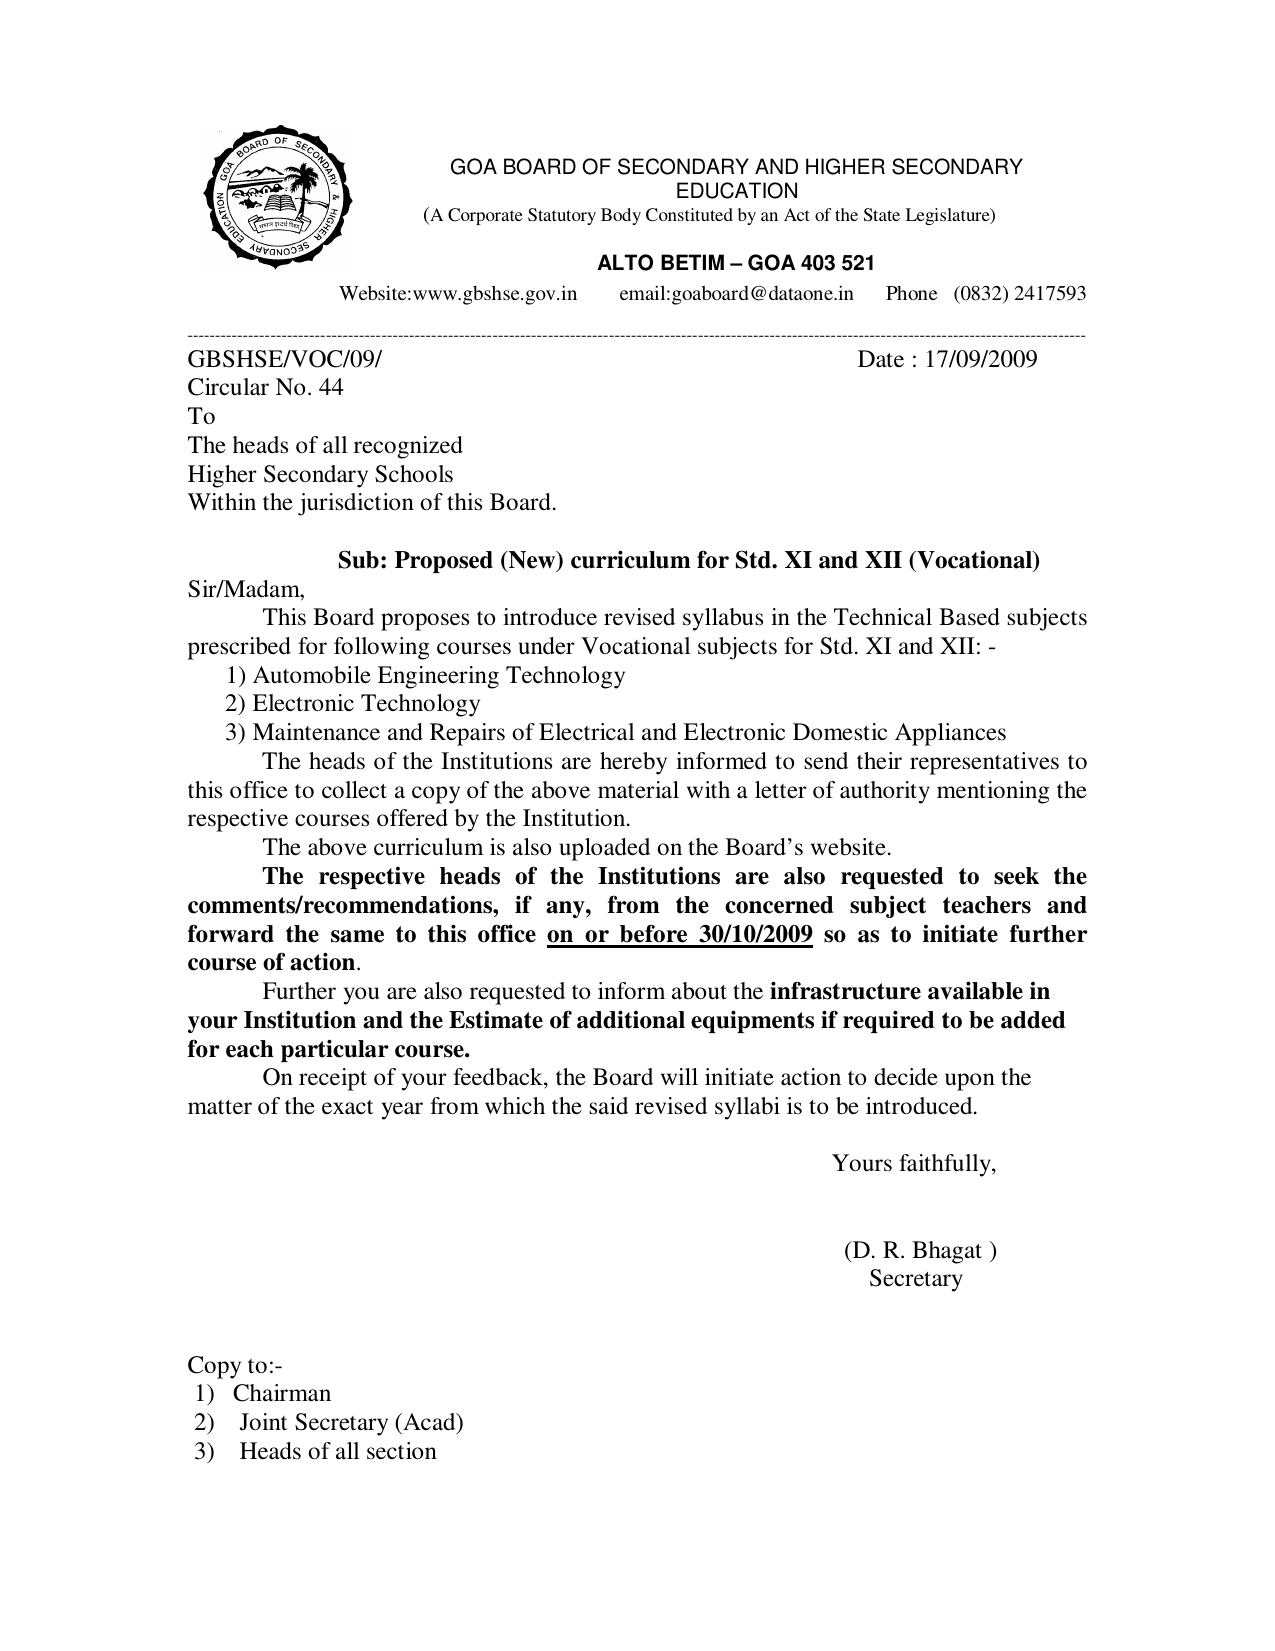 Astounding Circular No 44 Proposed New Curriculum For Std Xi And Xii Wiring Cloud Overrenstrafr09Org